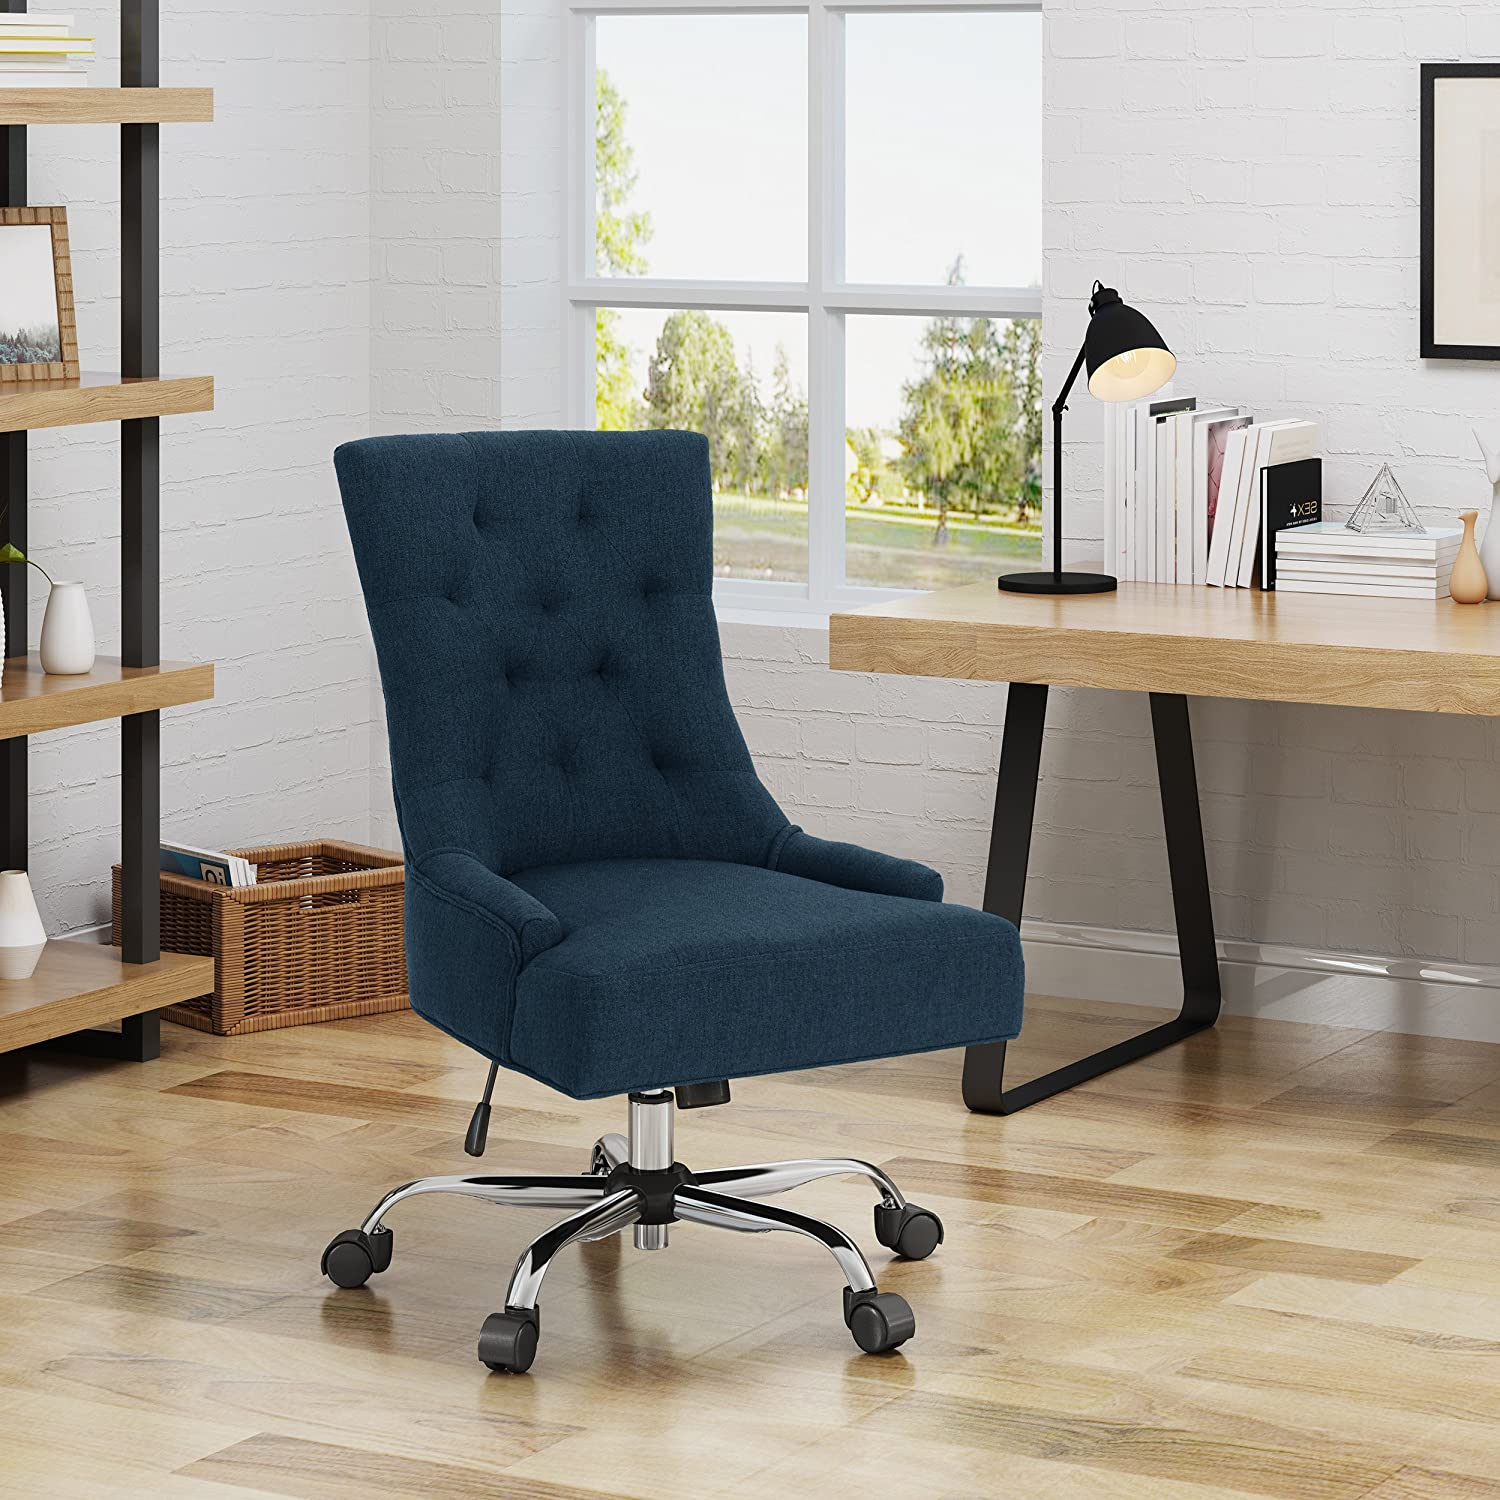 Christopher Knight Home Bagnold Desk Chair, Navy Blue Chrome